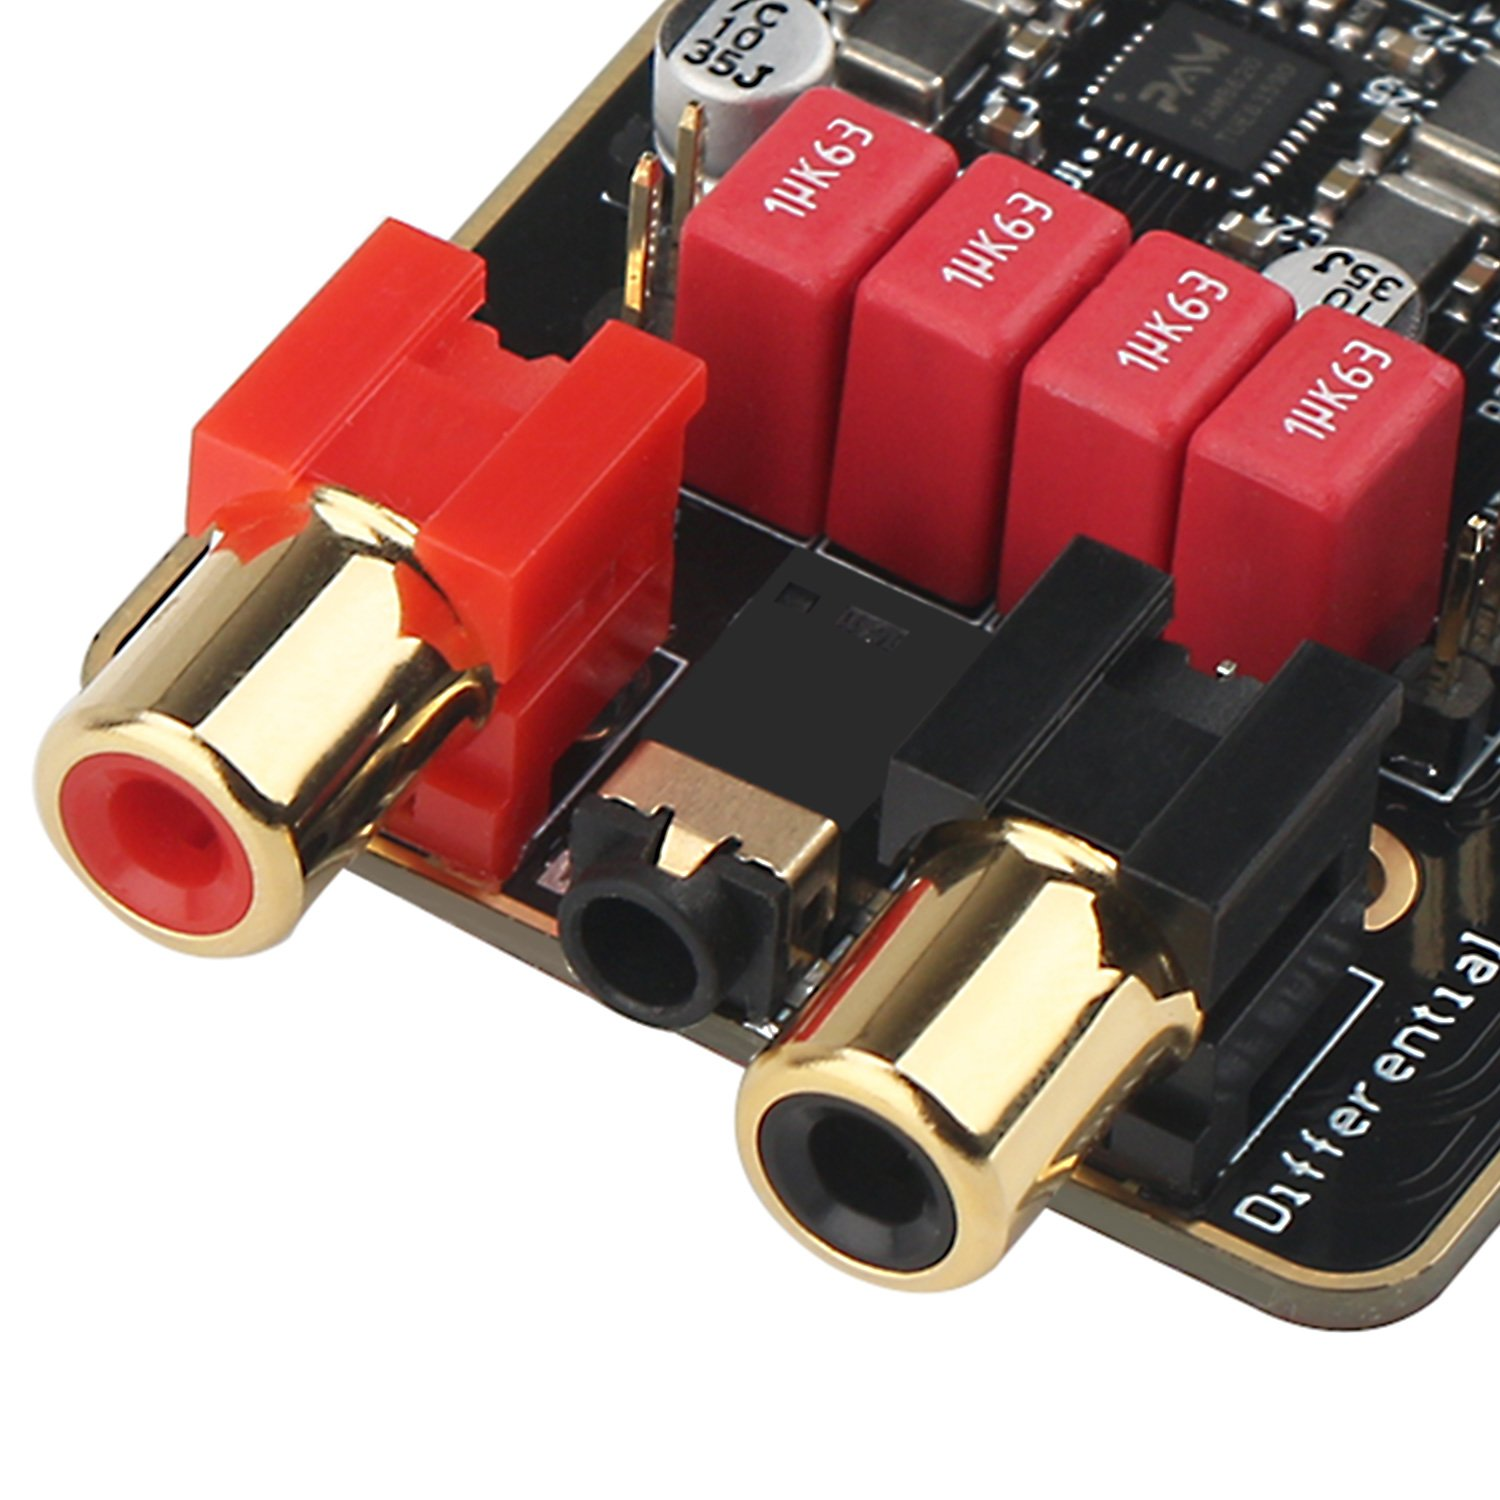 Audio Amplifier Board Droking Pam8406 Digital Power 5w Stereo Immersion Gold Amp